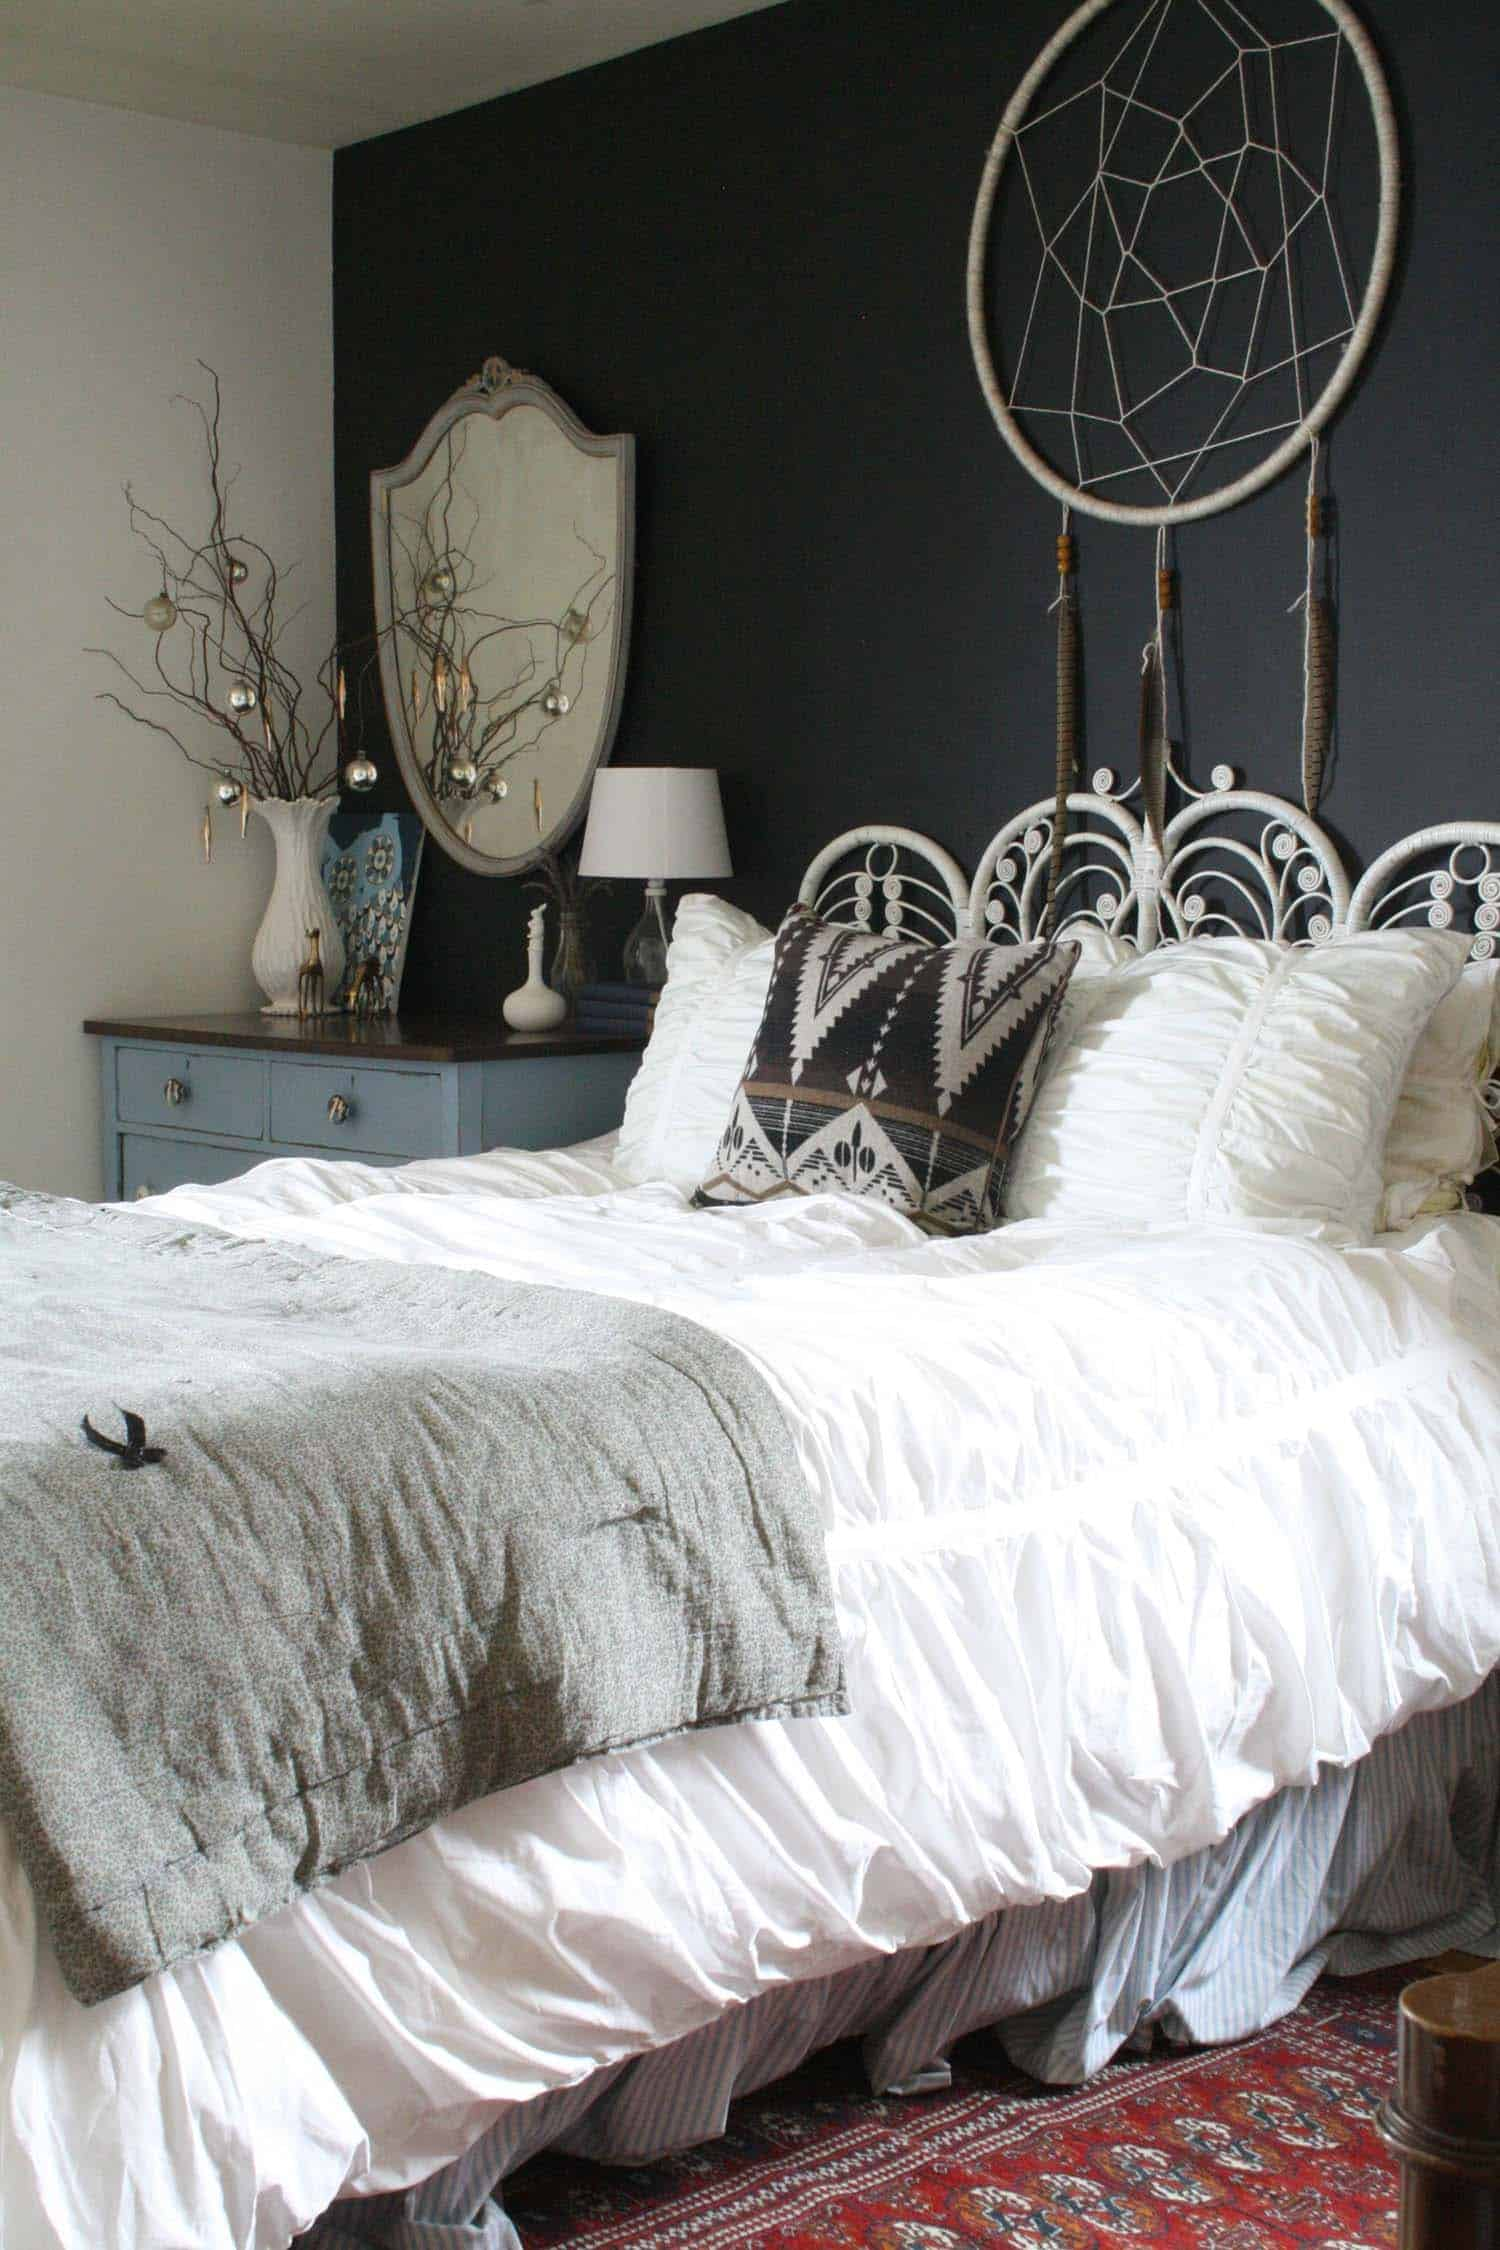 35 ways to create a christmas wonderland in your bedroom - One bedroom decorating ideas ...